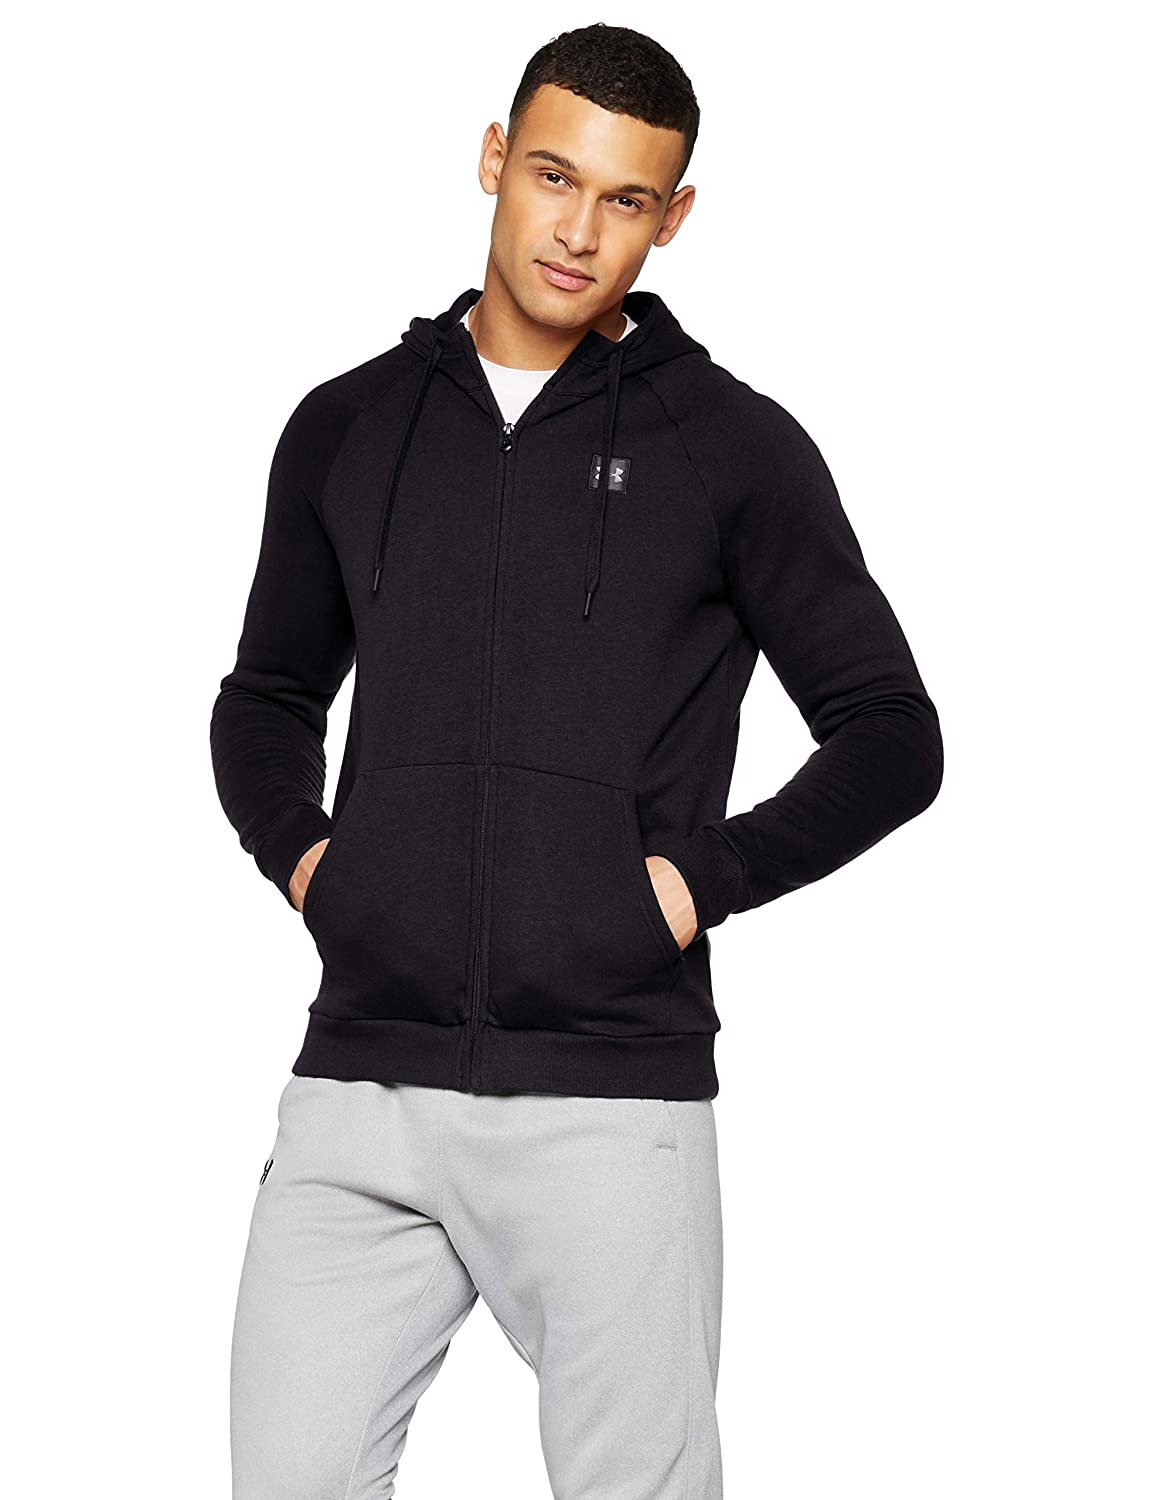 TALLA L. Under Armour Rival Fleece FZ Hoodie Parte Superior del Calentamiento, Hombre